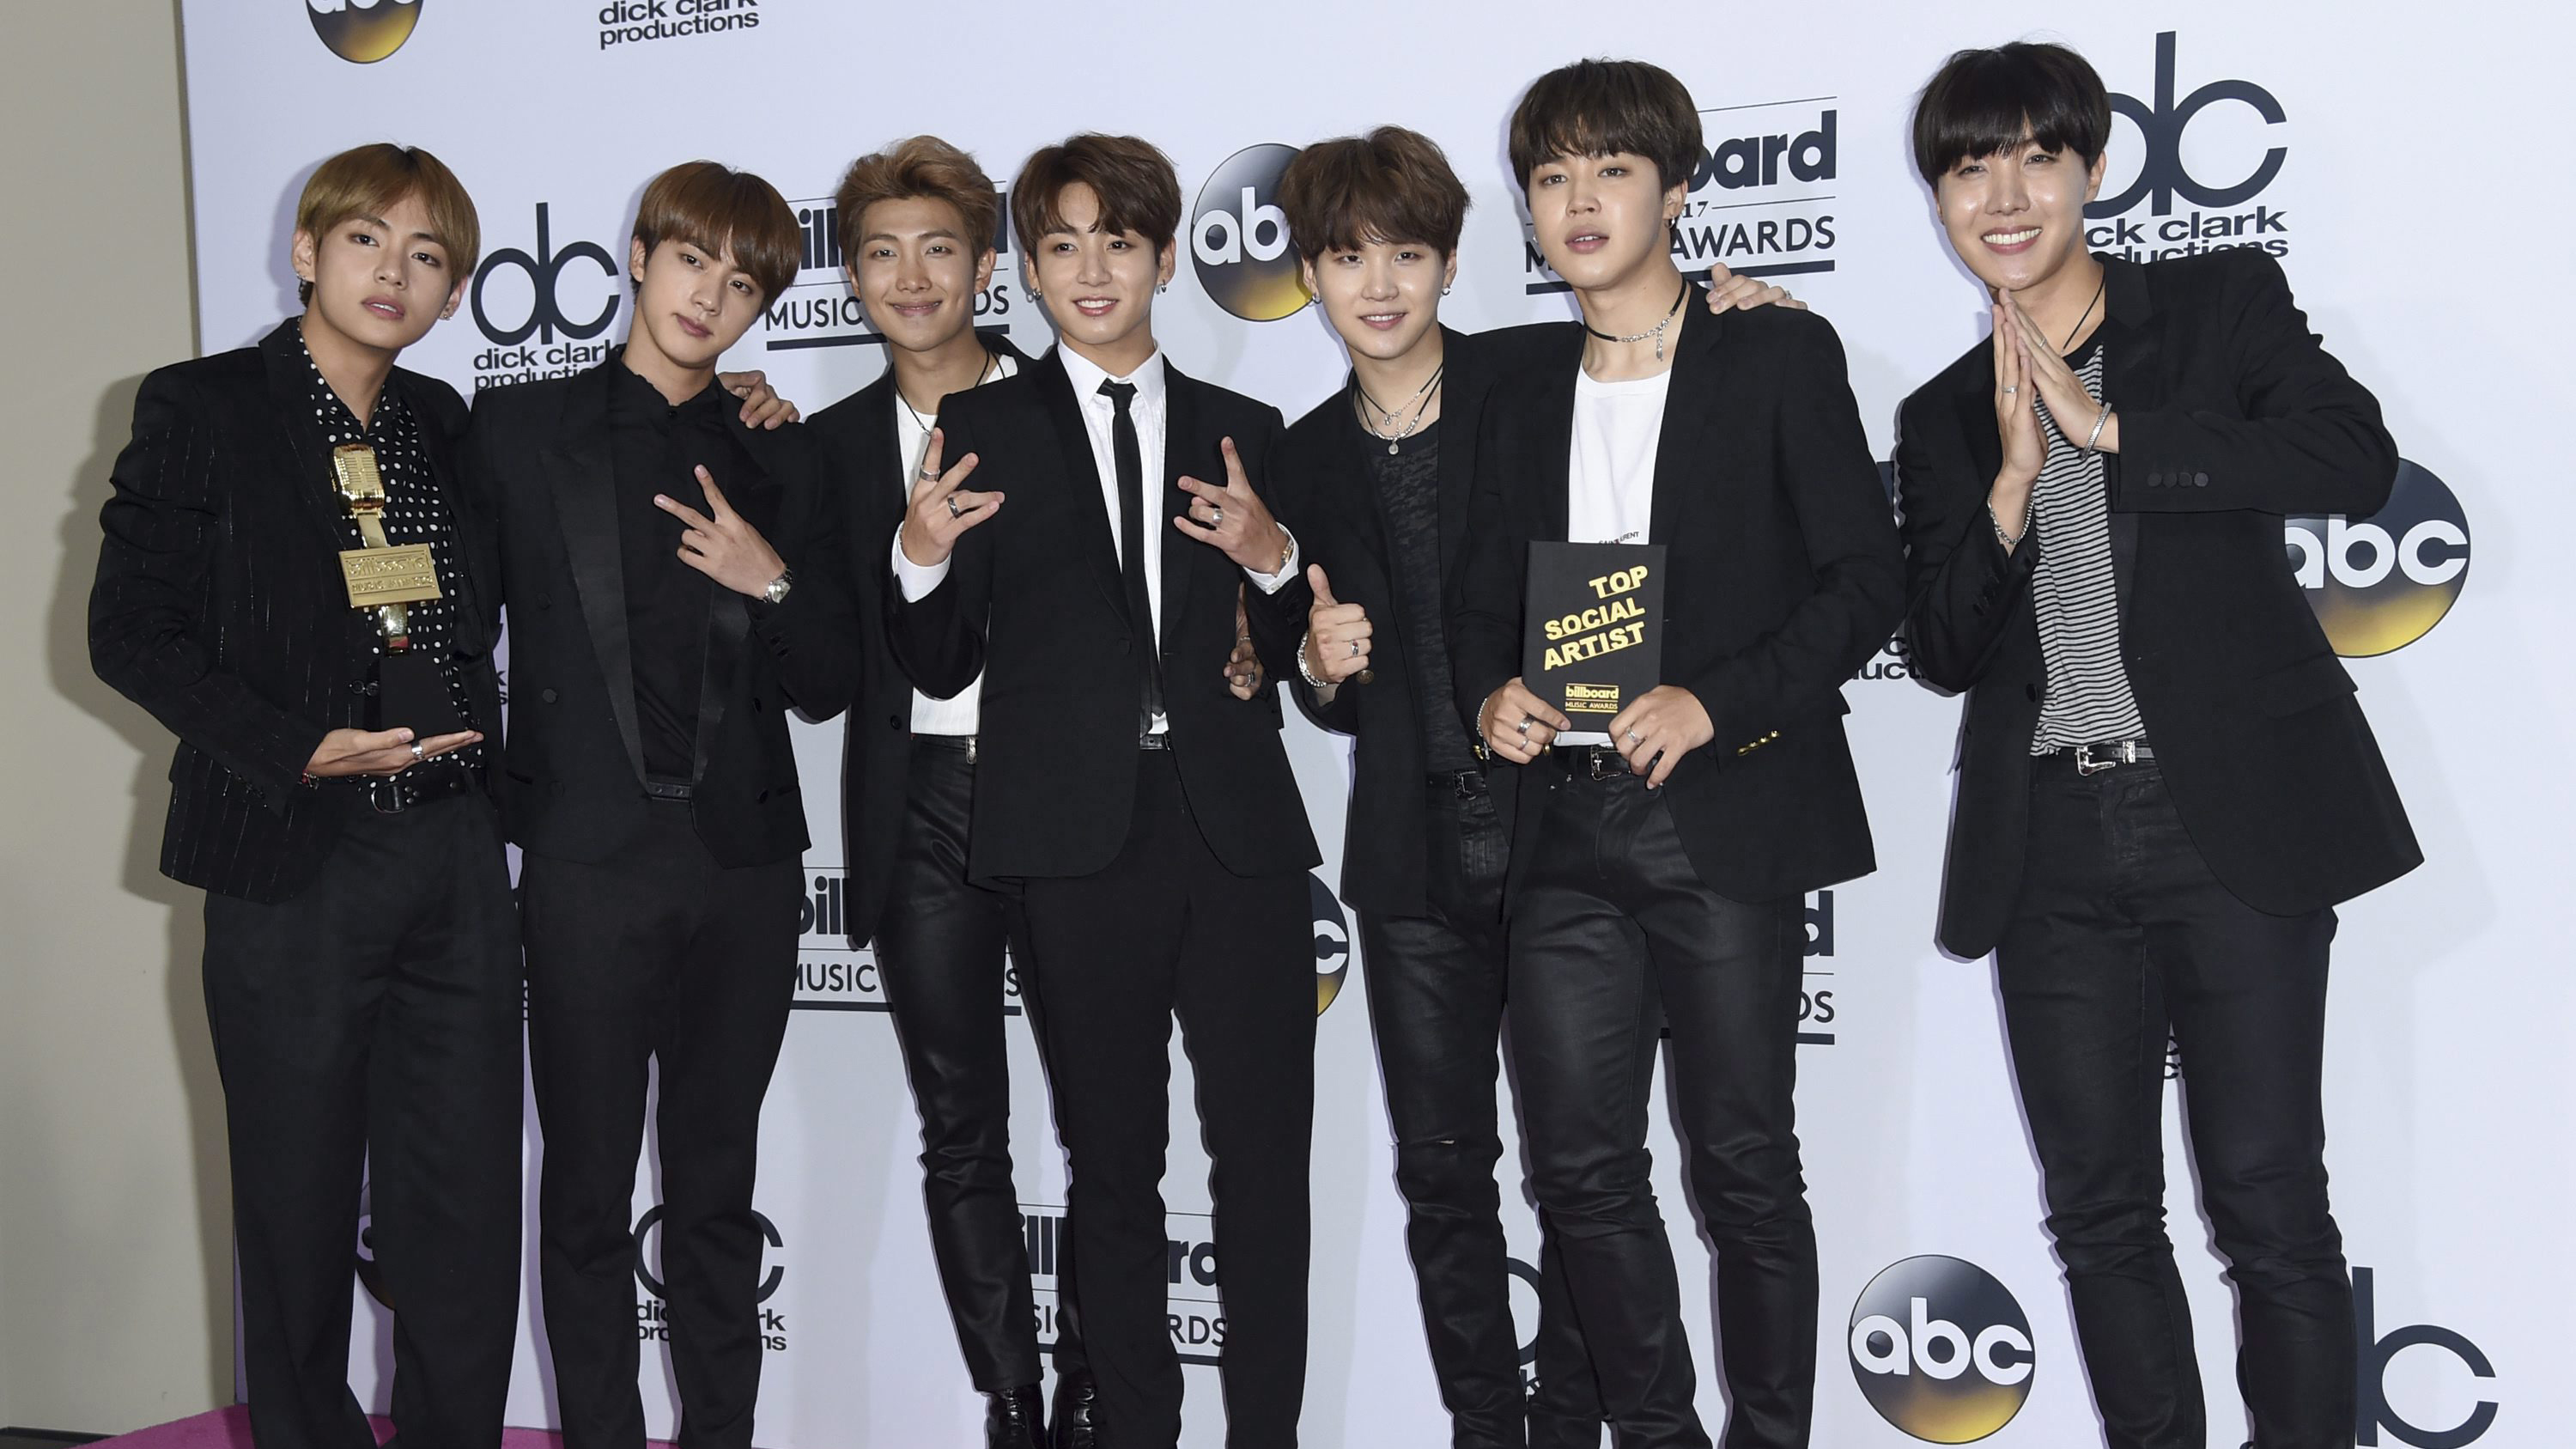 beatles boyband to revolutionaries This week billboard magazine came out with the 100 best boy band songs   the liverpool quartet known as the beatles were not only the.